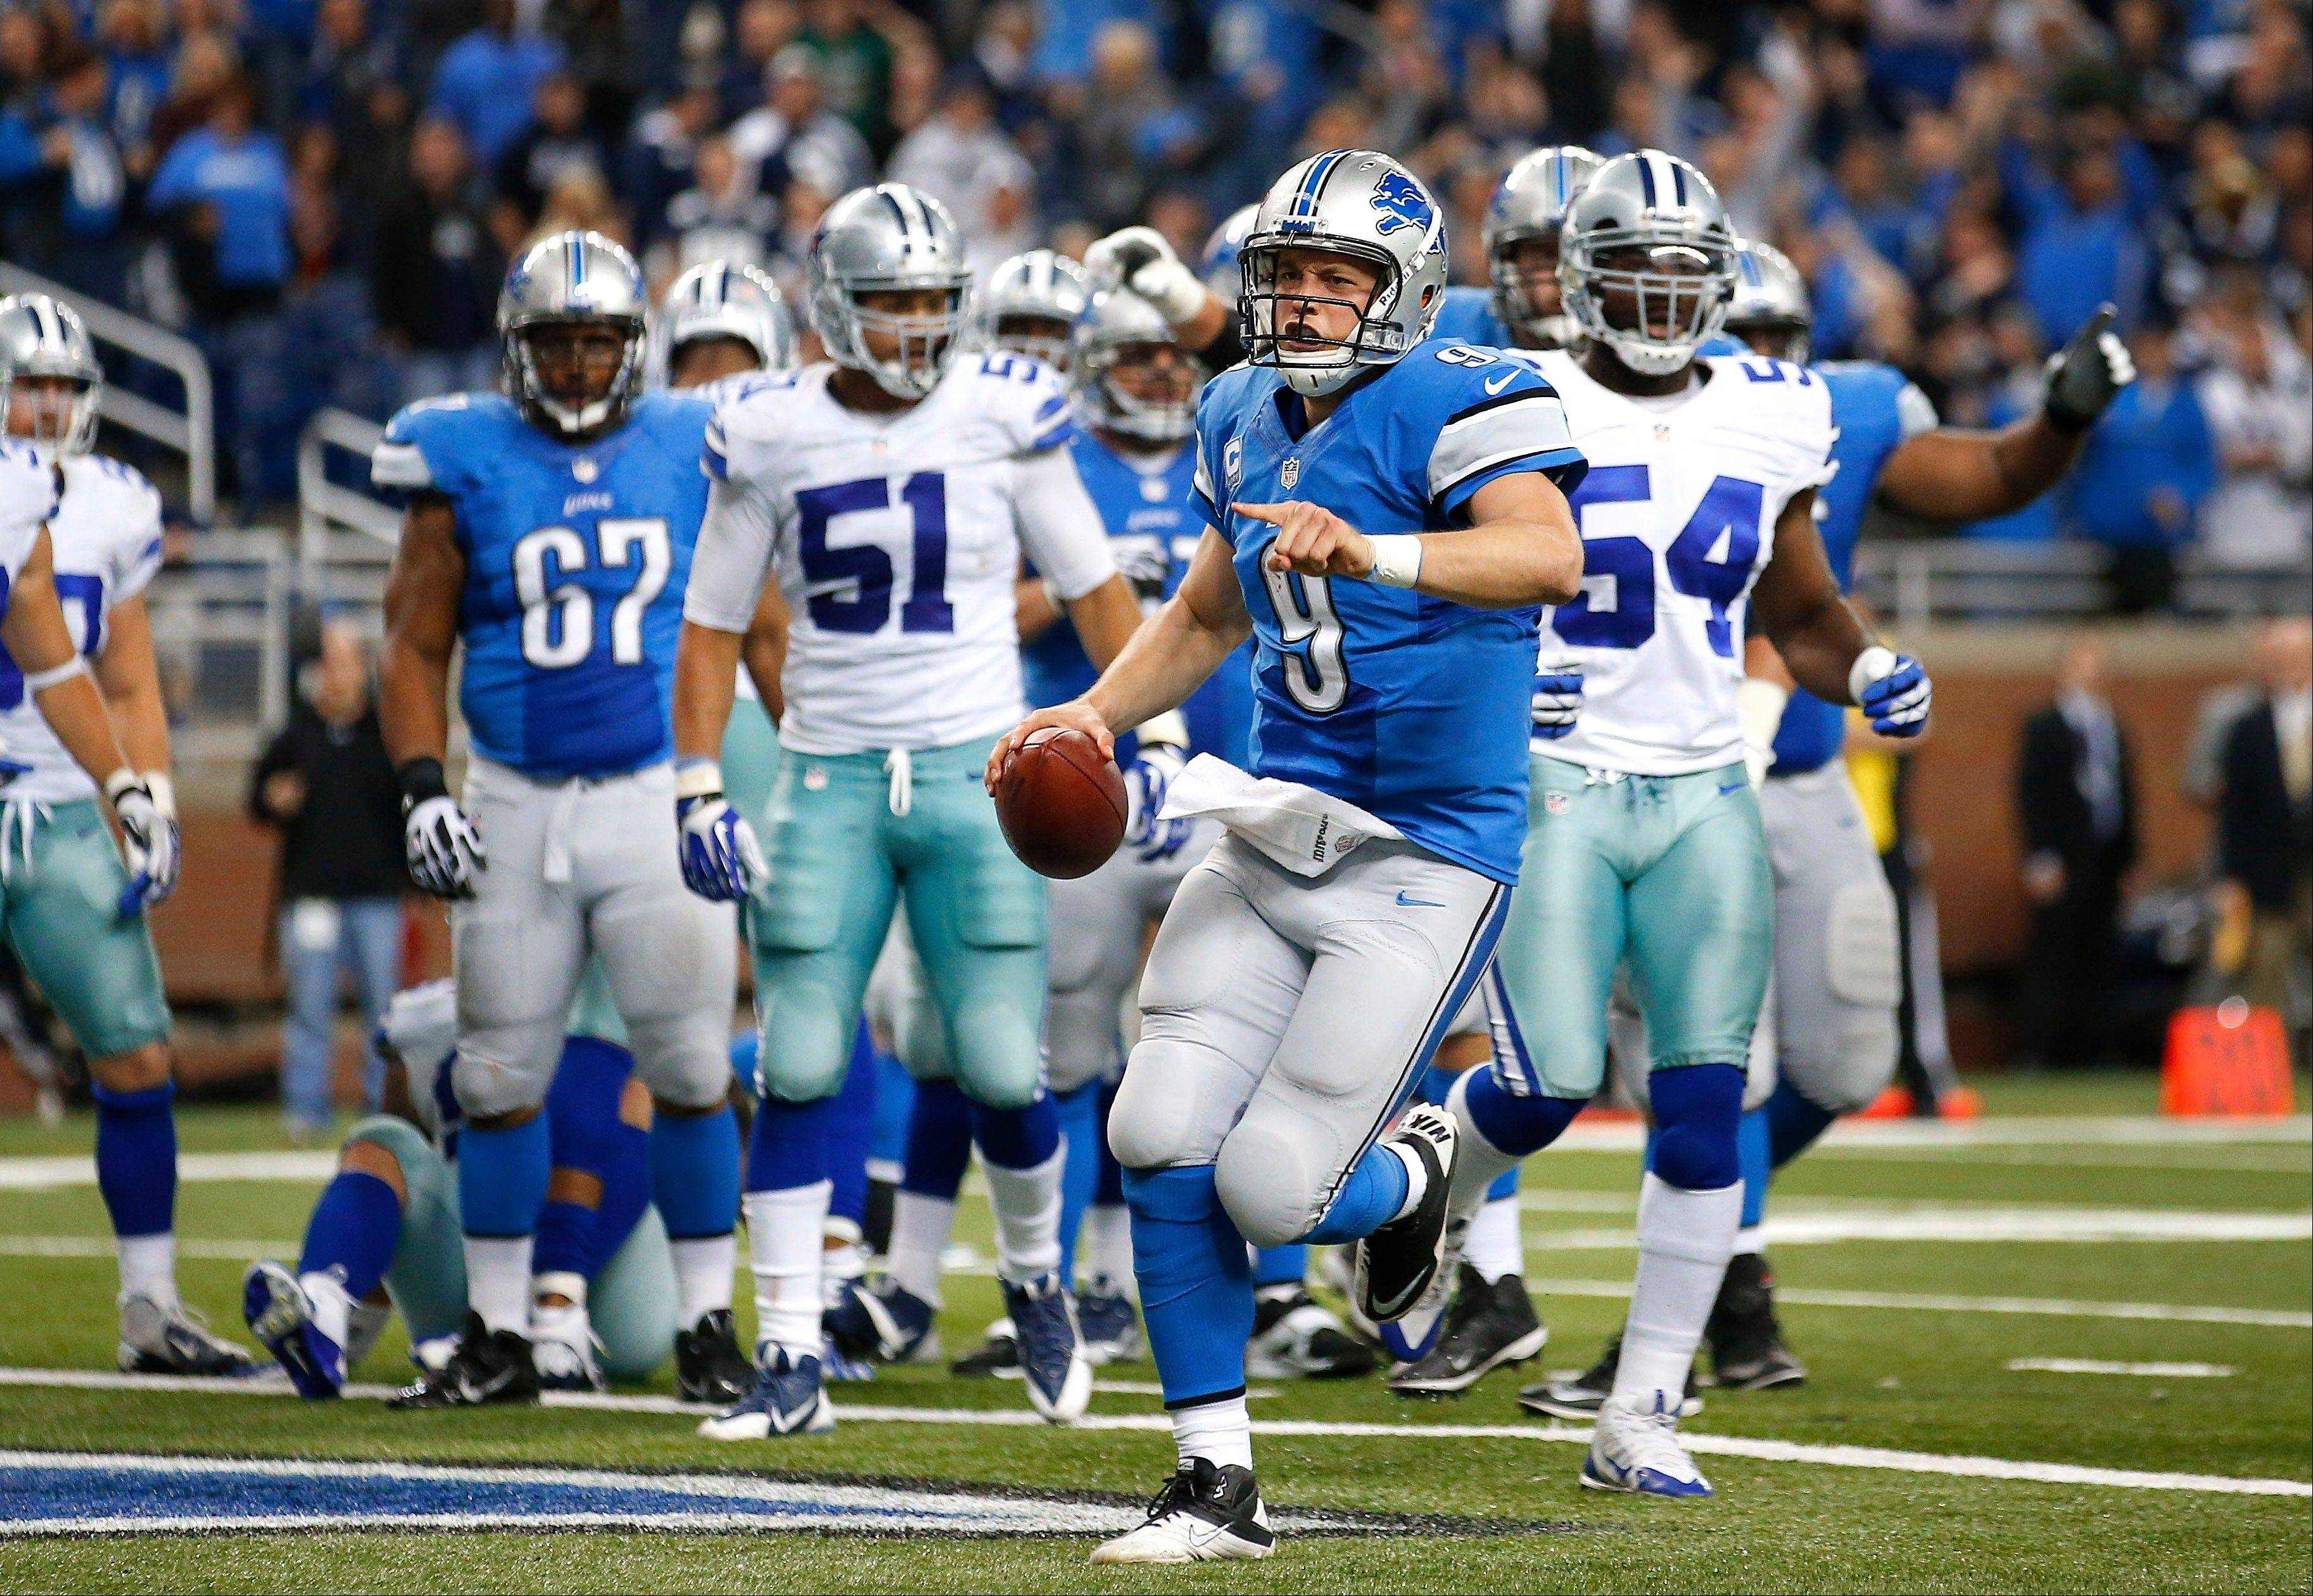 Detroit Lions quarterback Matthew Stafford (9) celebrates scoring on a 1-yard touchdown run against the Dallas Cowboys in the fourth quarter.